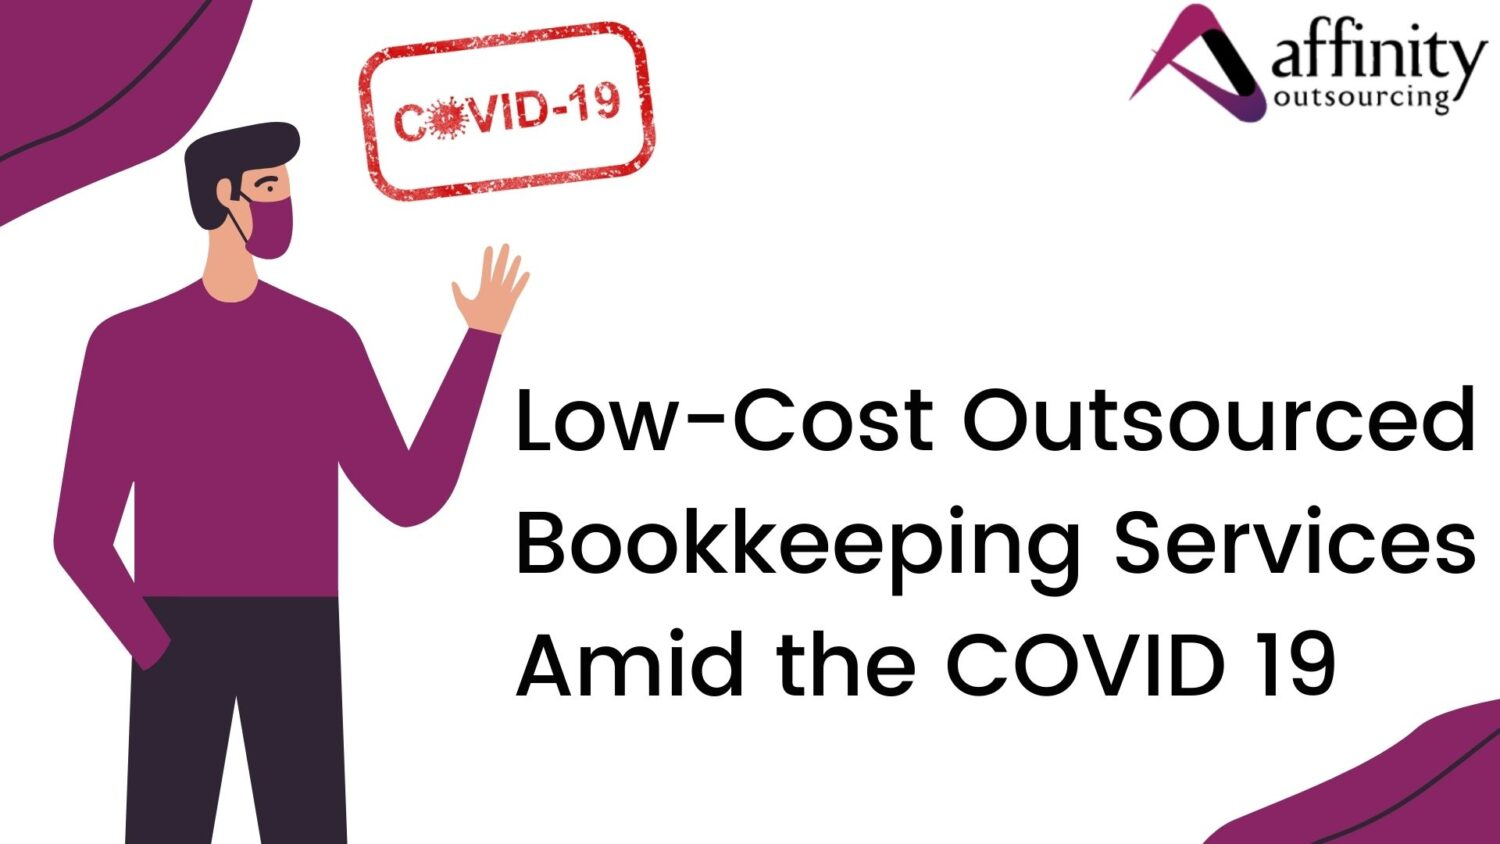 Low-Cost Outsourced Bookkeeping Services Amid the COVID19